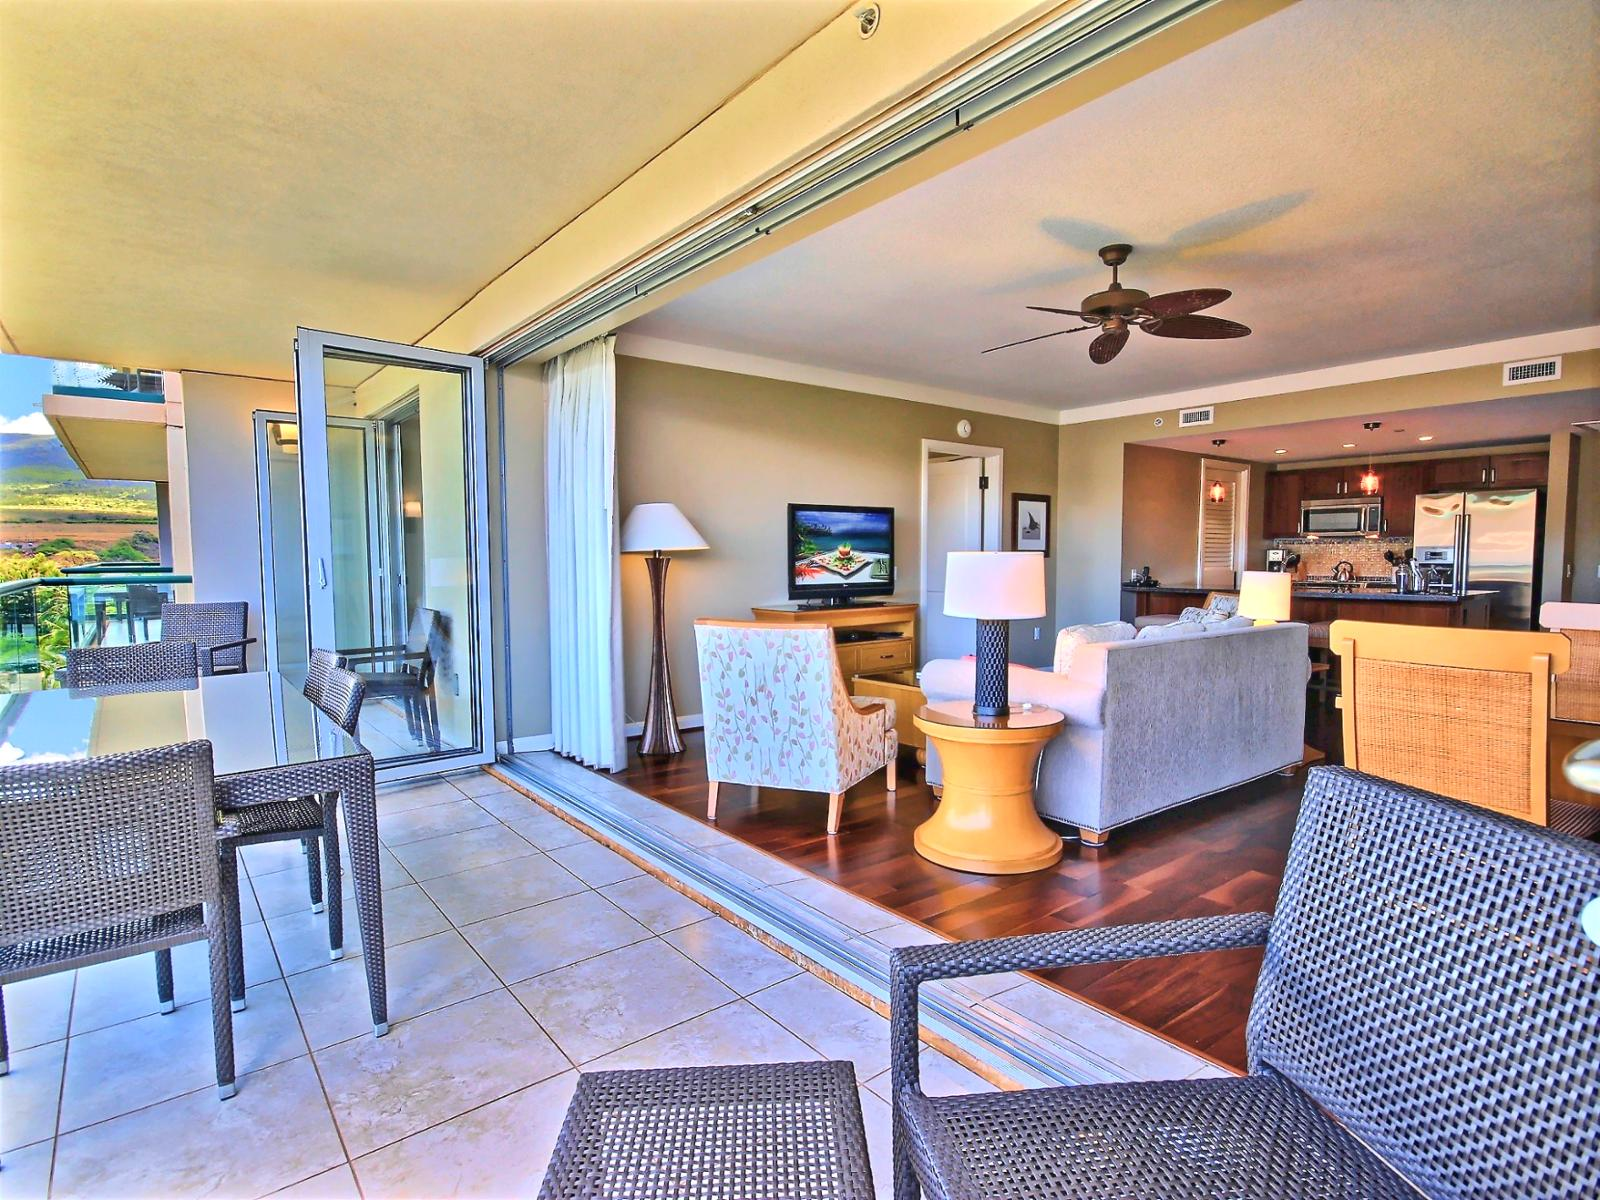 Looking back in from the lanai to the spacious living room. Great indoor/outdoor feel.